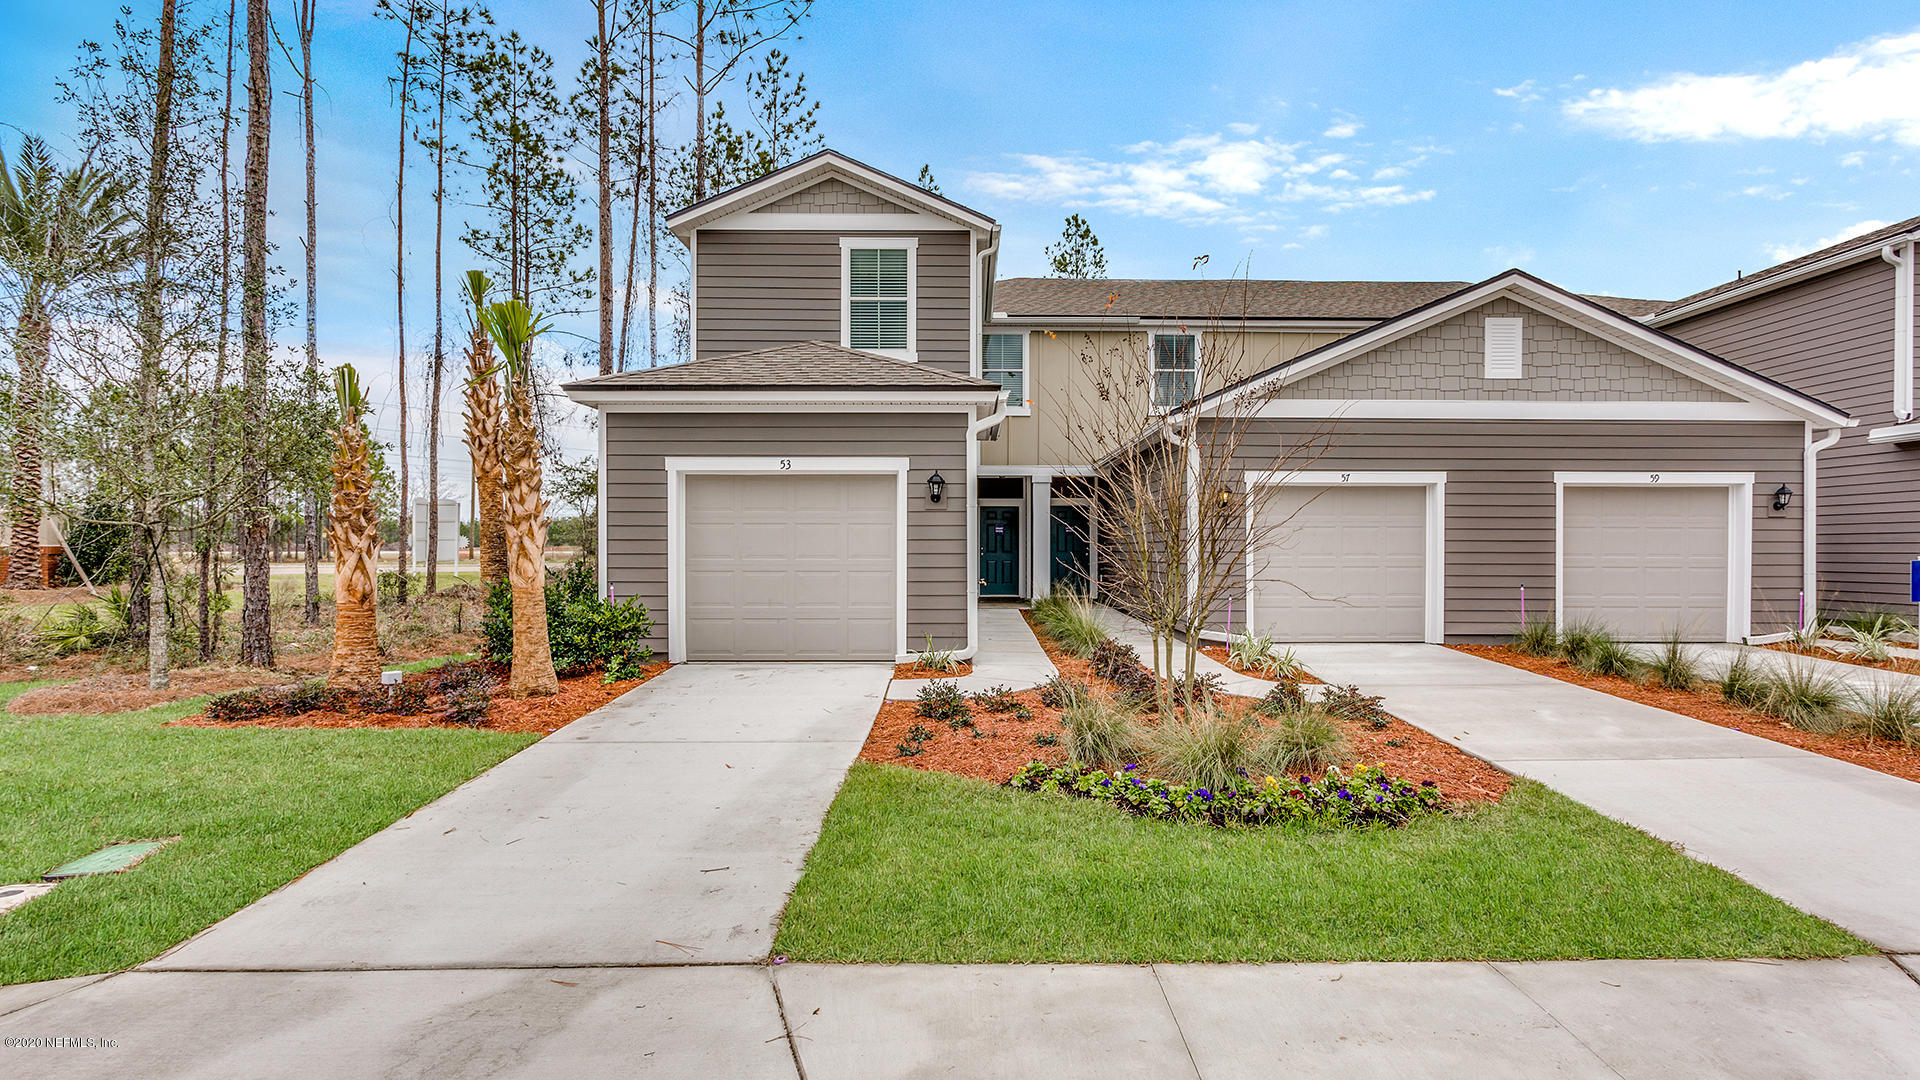 40 SCOTCH PEBBLE, ST JOHNS, FLORIDA 32259, 2 Bedrooms Bedrooms, ,2 BathroomsBathrooms,Residential,For sale,SCOTCH PEBBLE,1082248